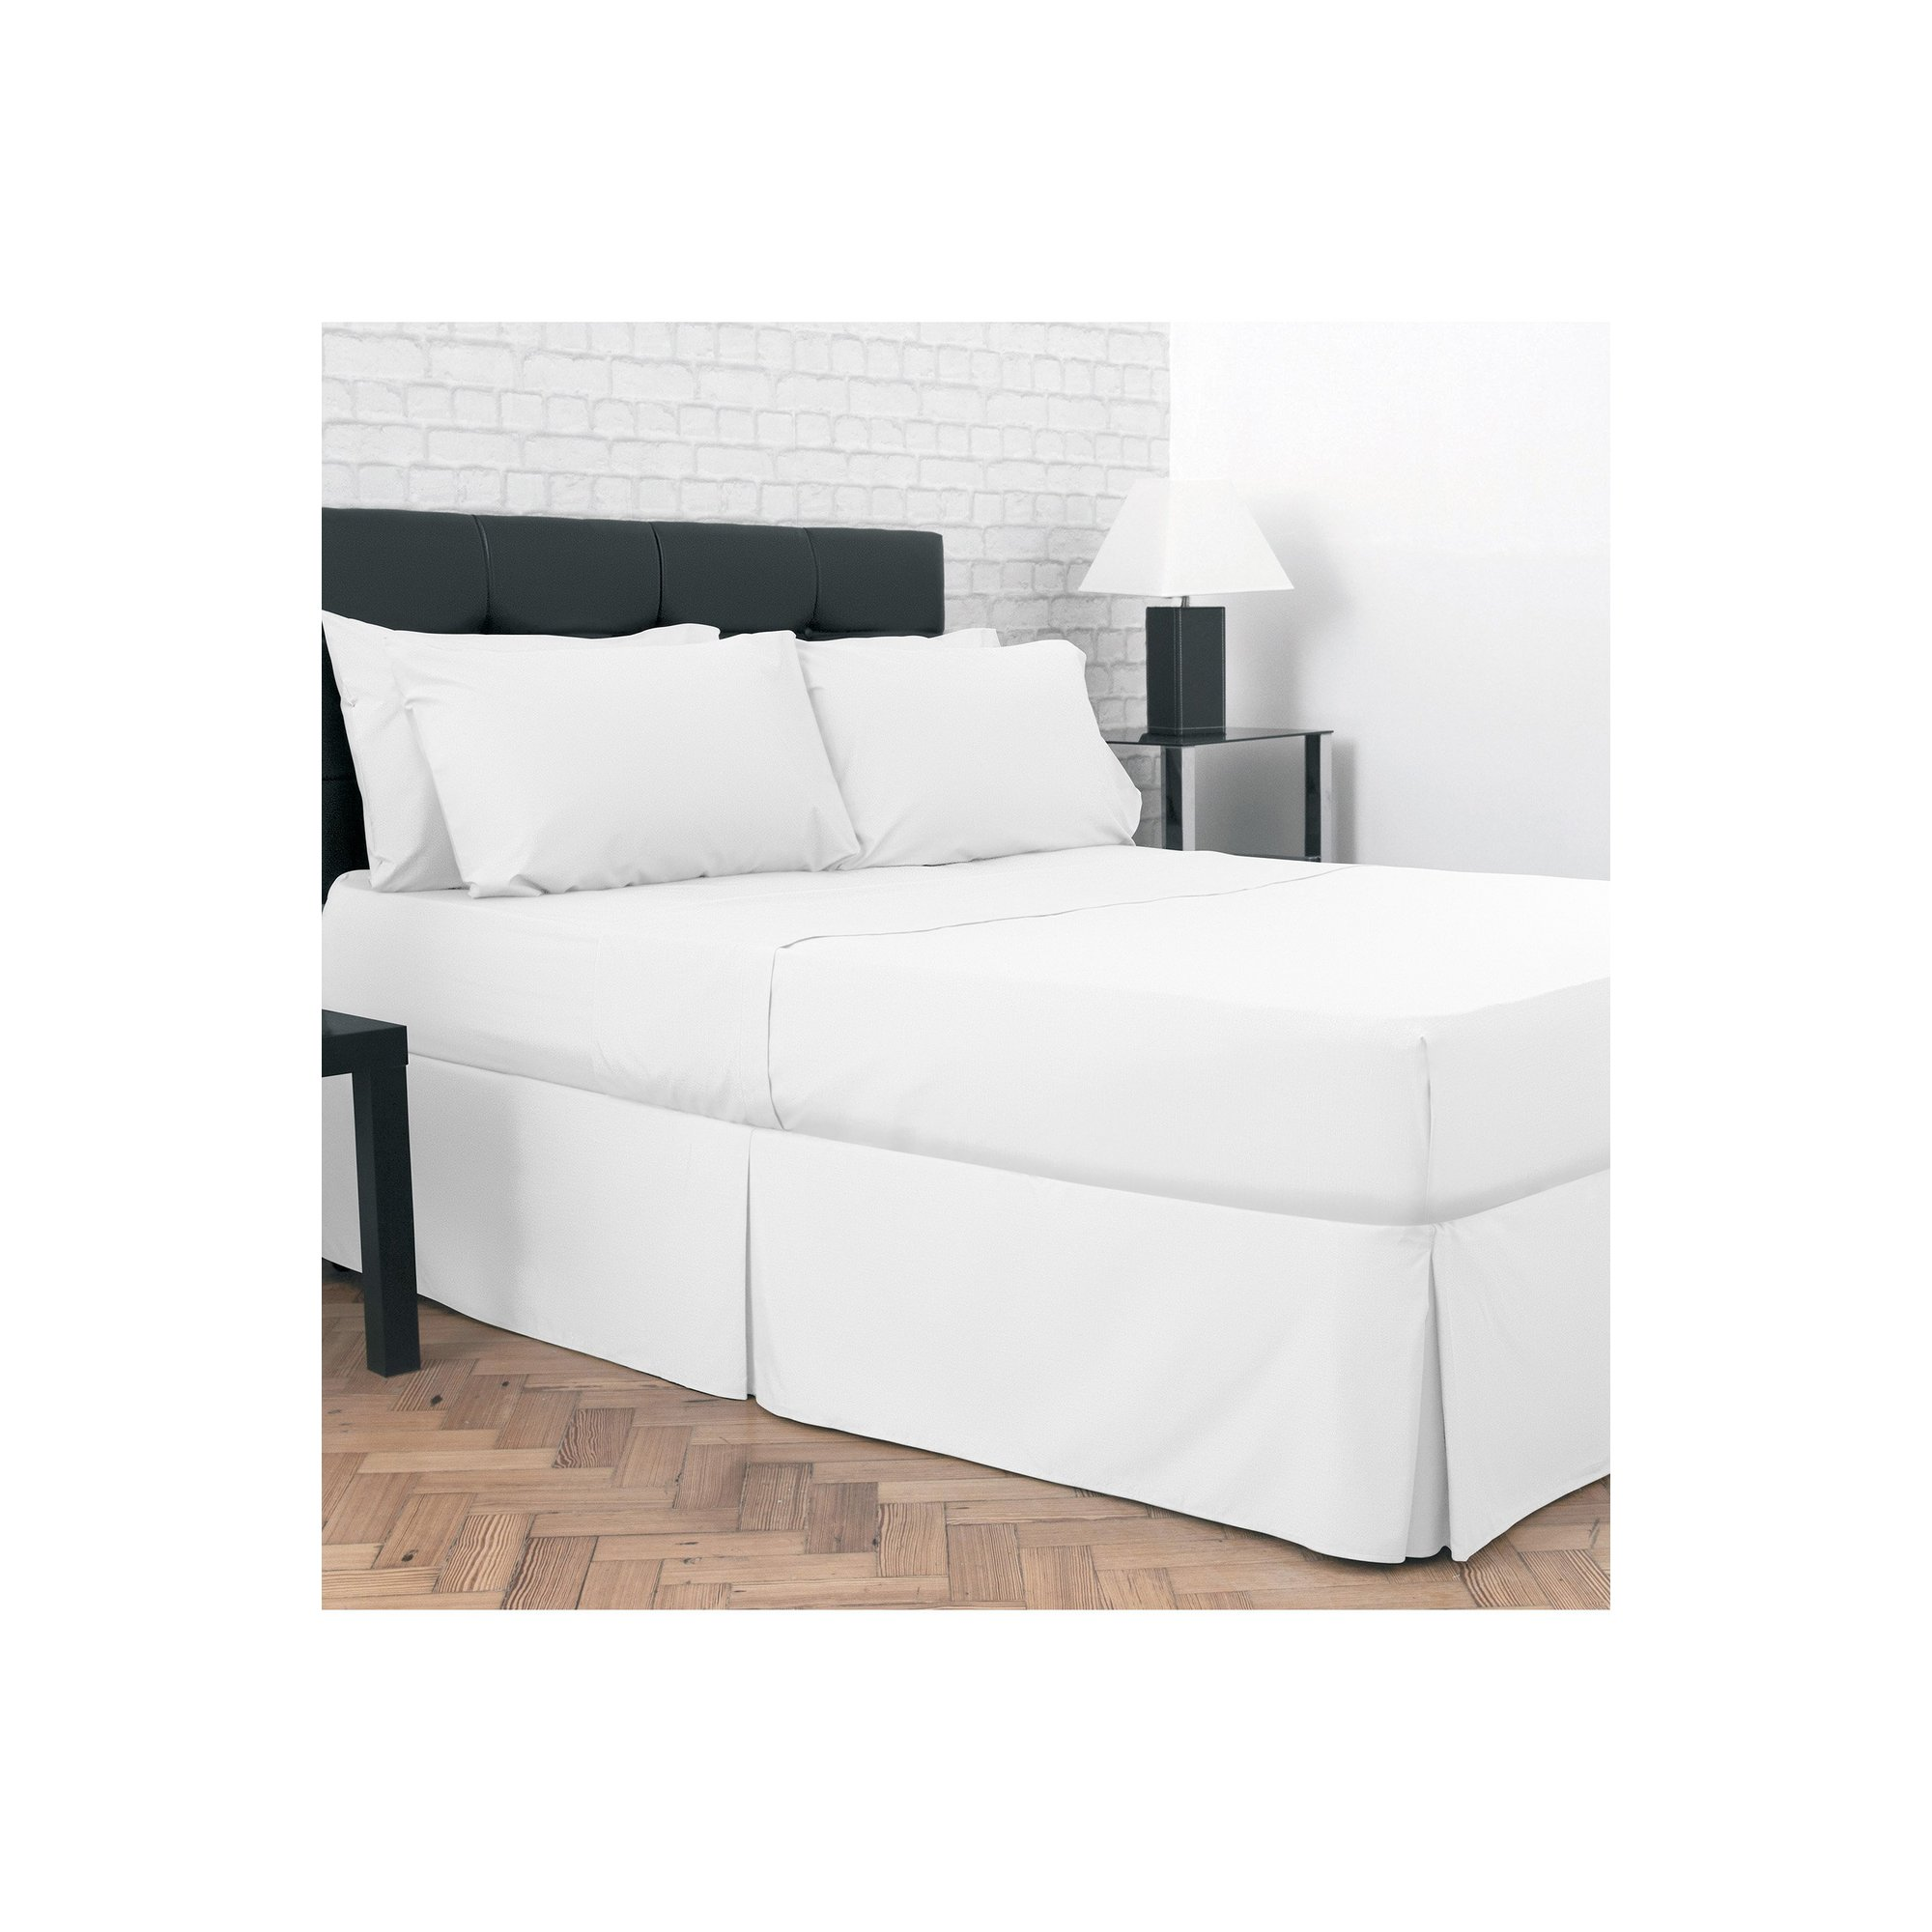 Image of 200 Count Percale Flat Sheet